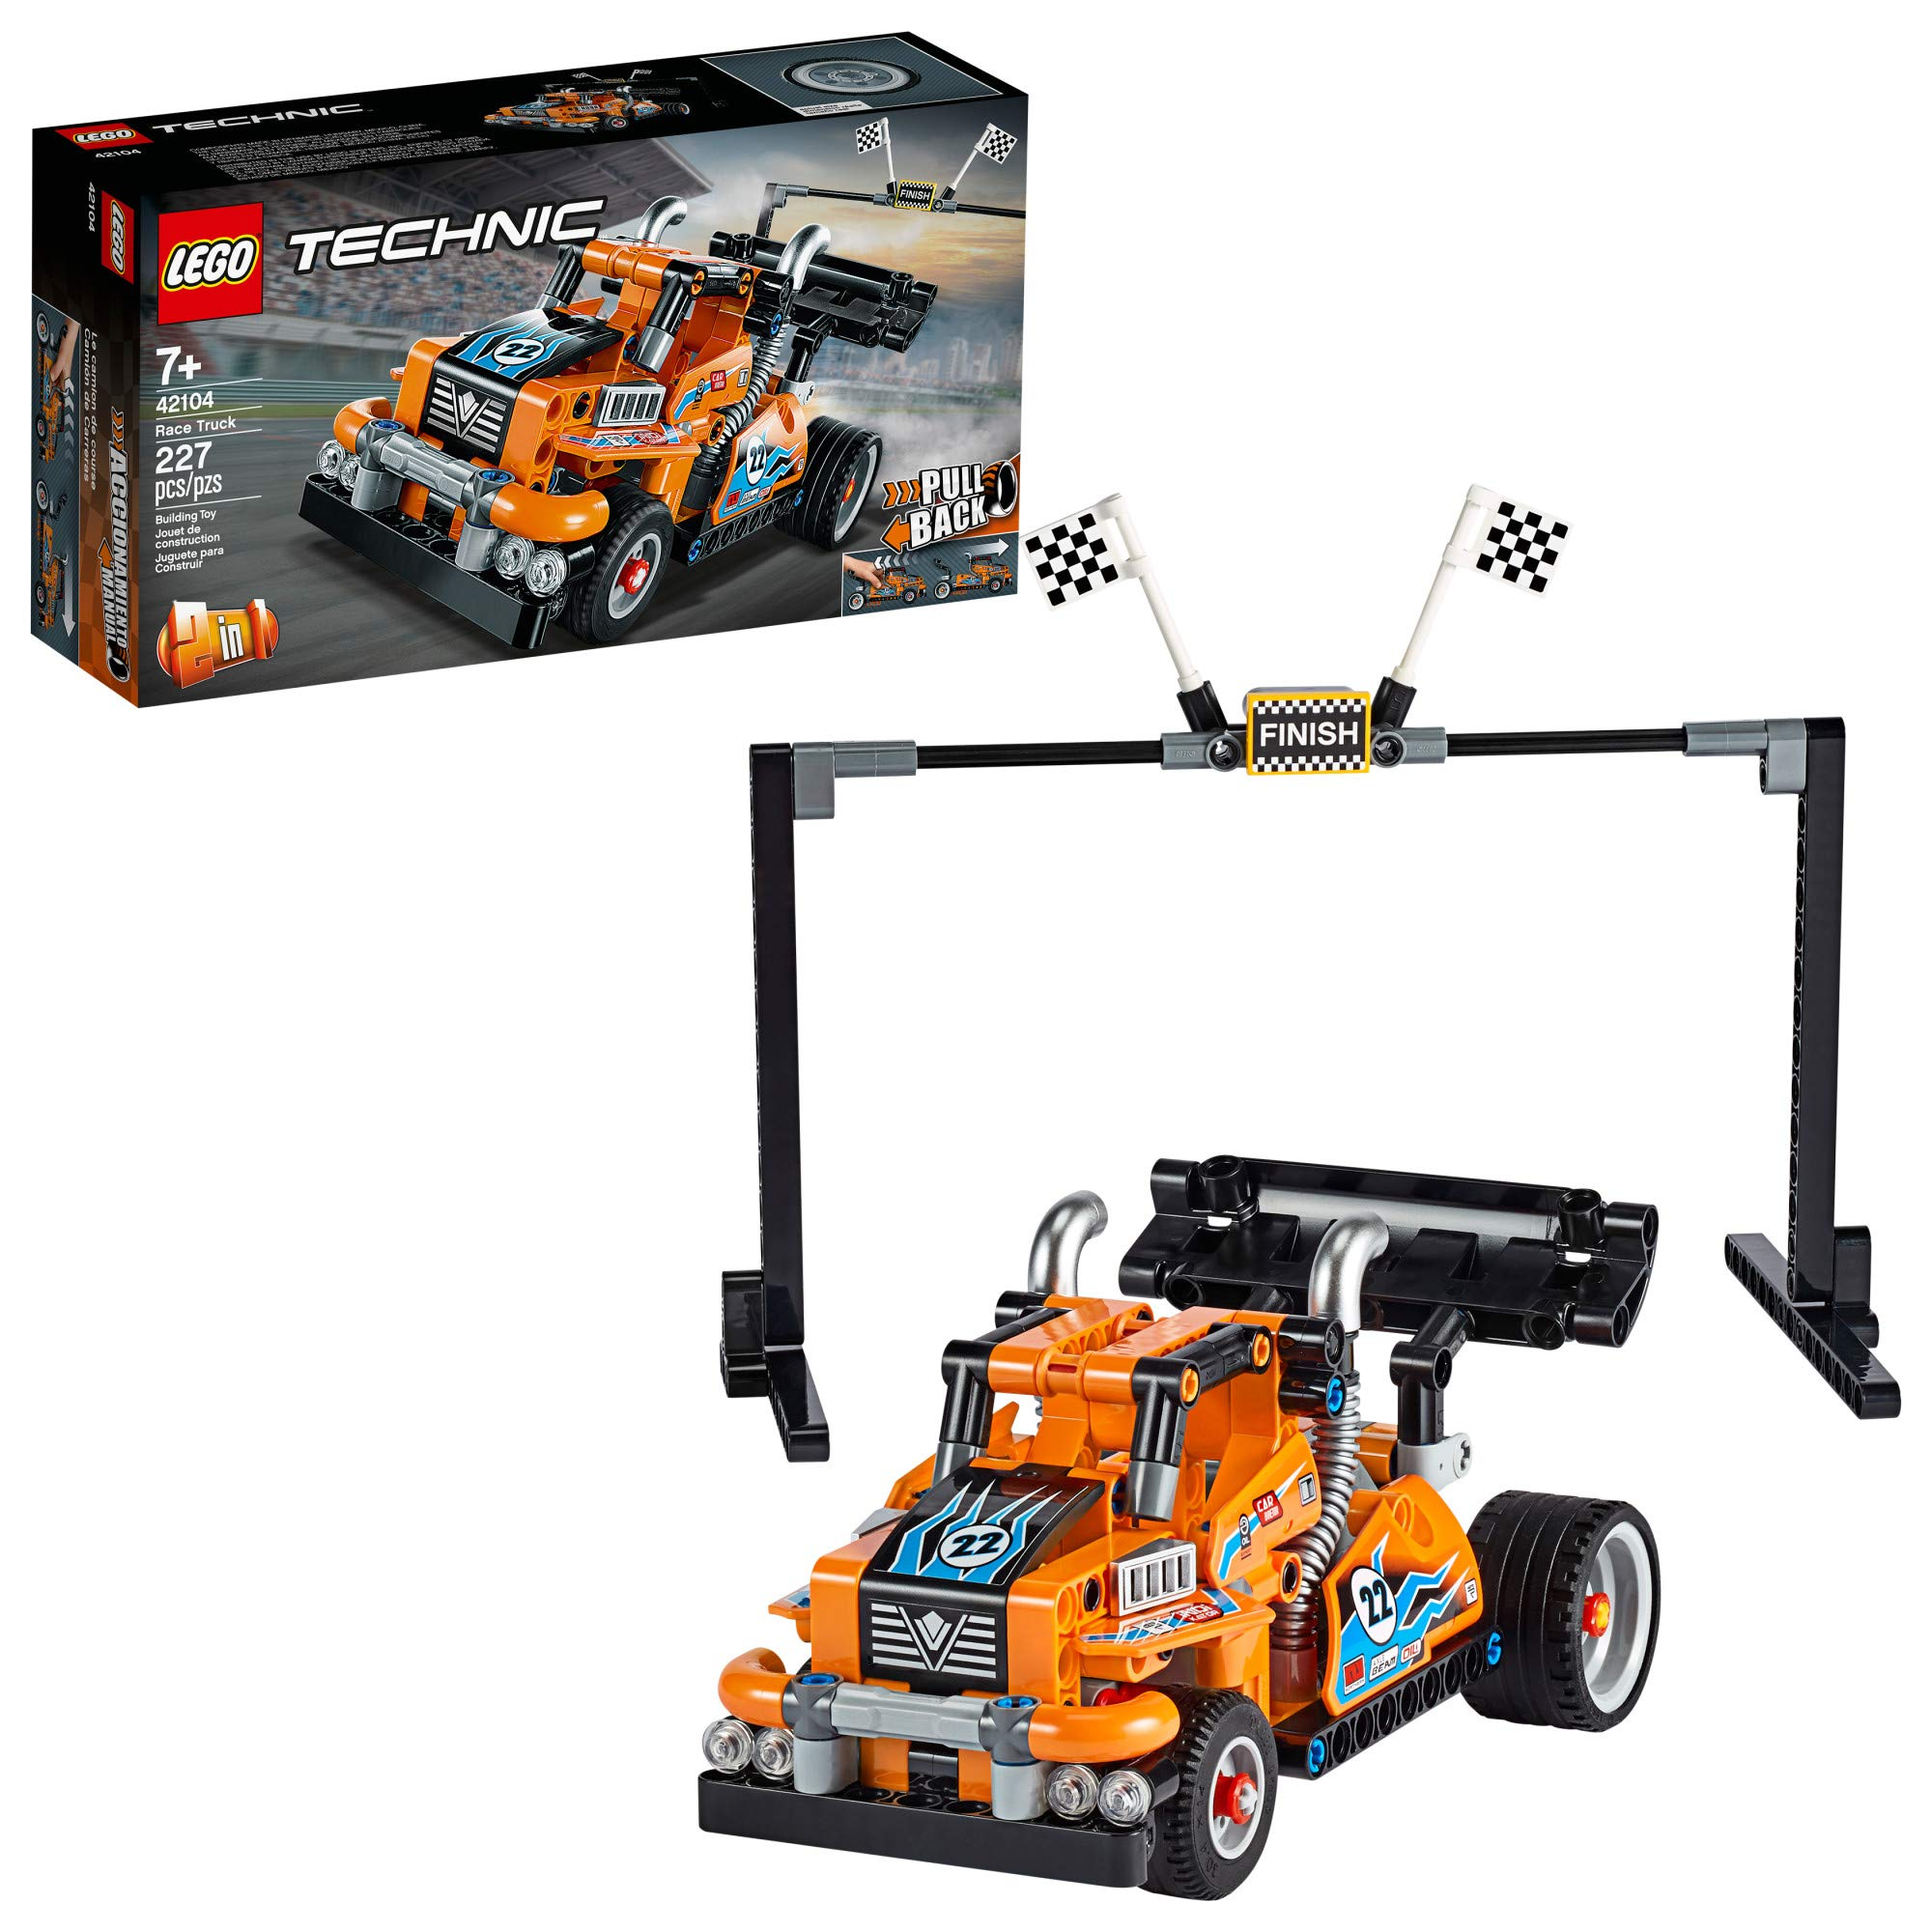 LEGO Technic Race Truck 42104 Pull-Back Model Truck Building Kit New 2020 (227 Pieces)